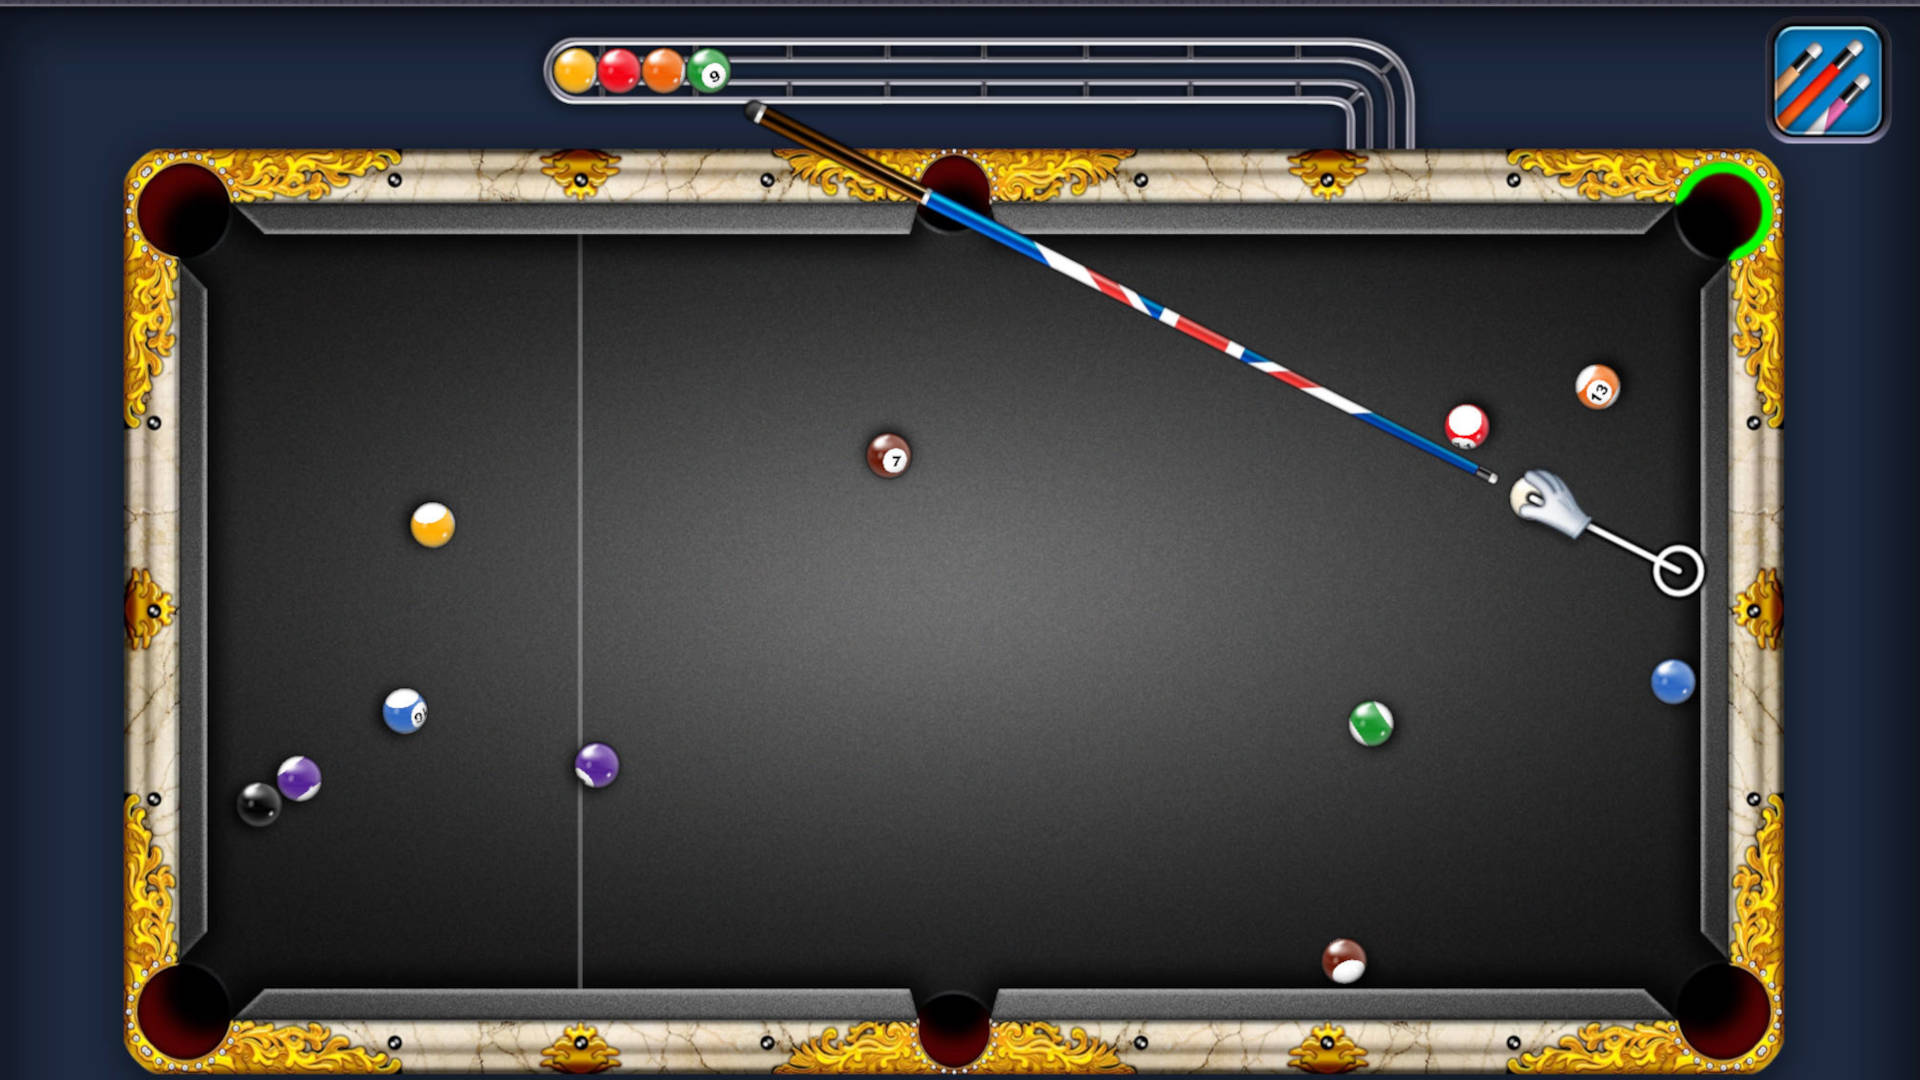 8 Ball Pool Download How To Get It On Mobile Pocket Tactics